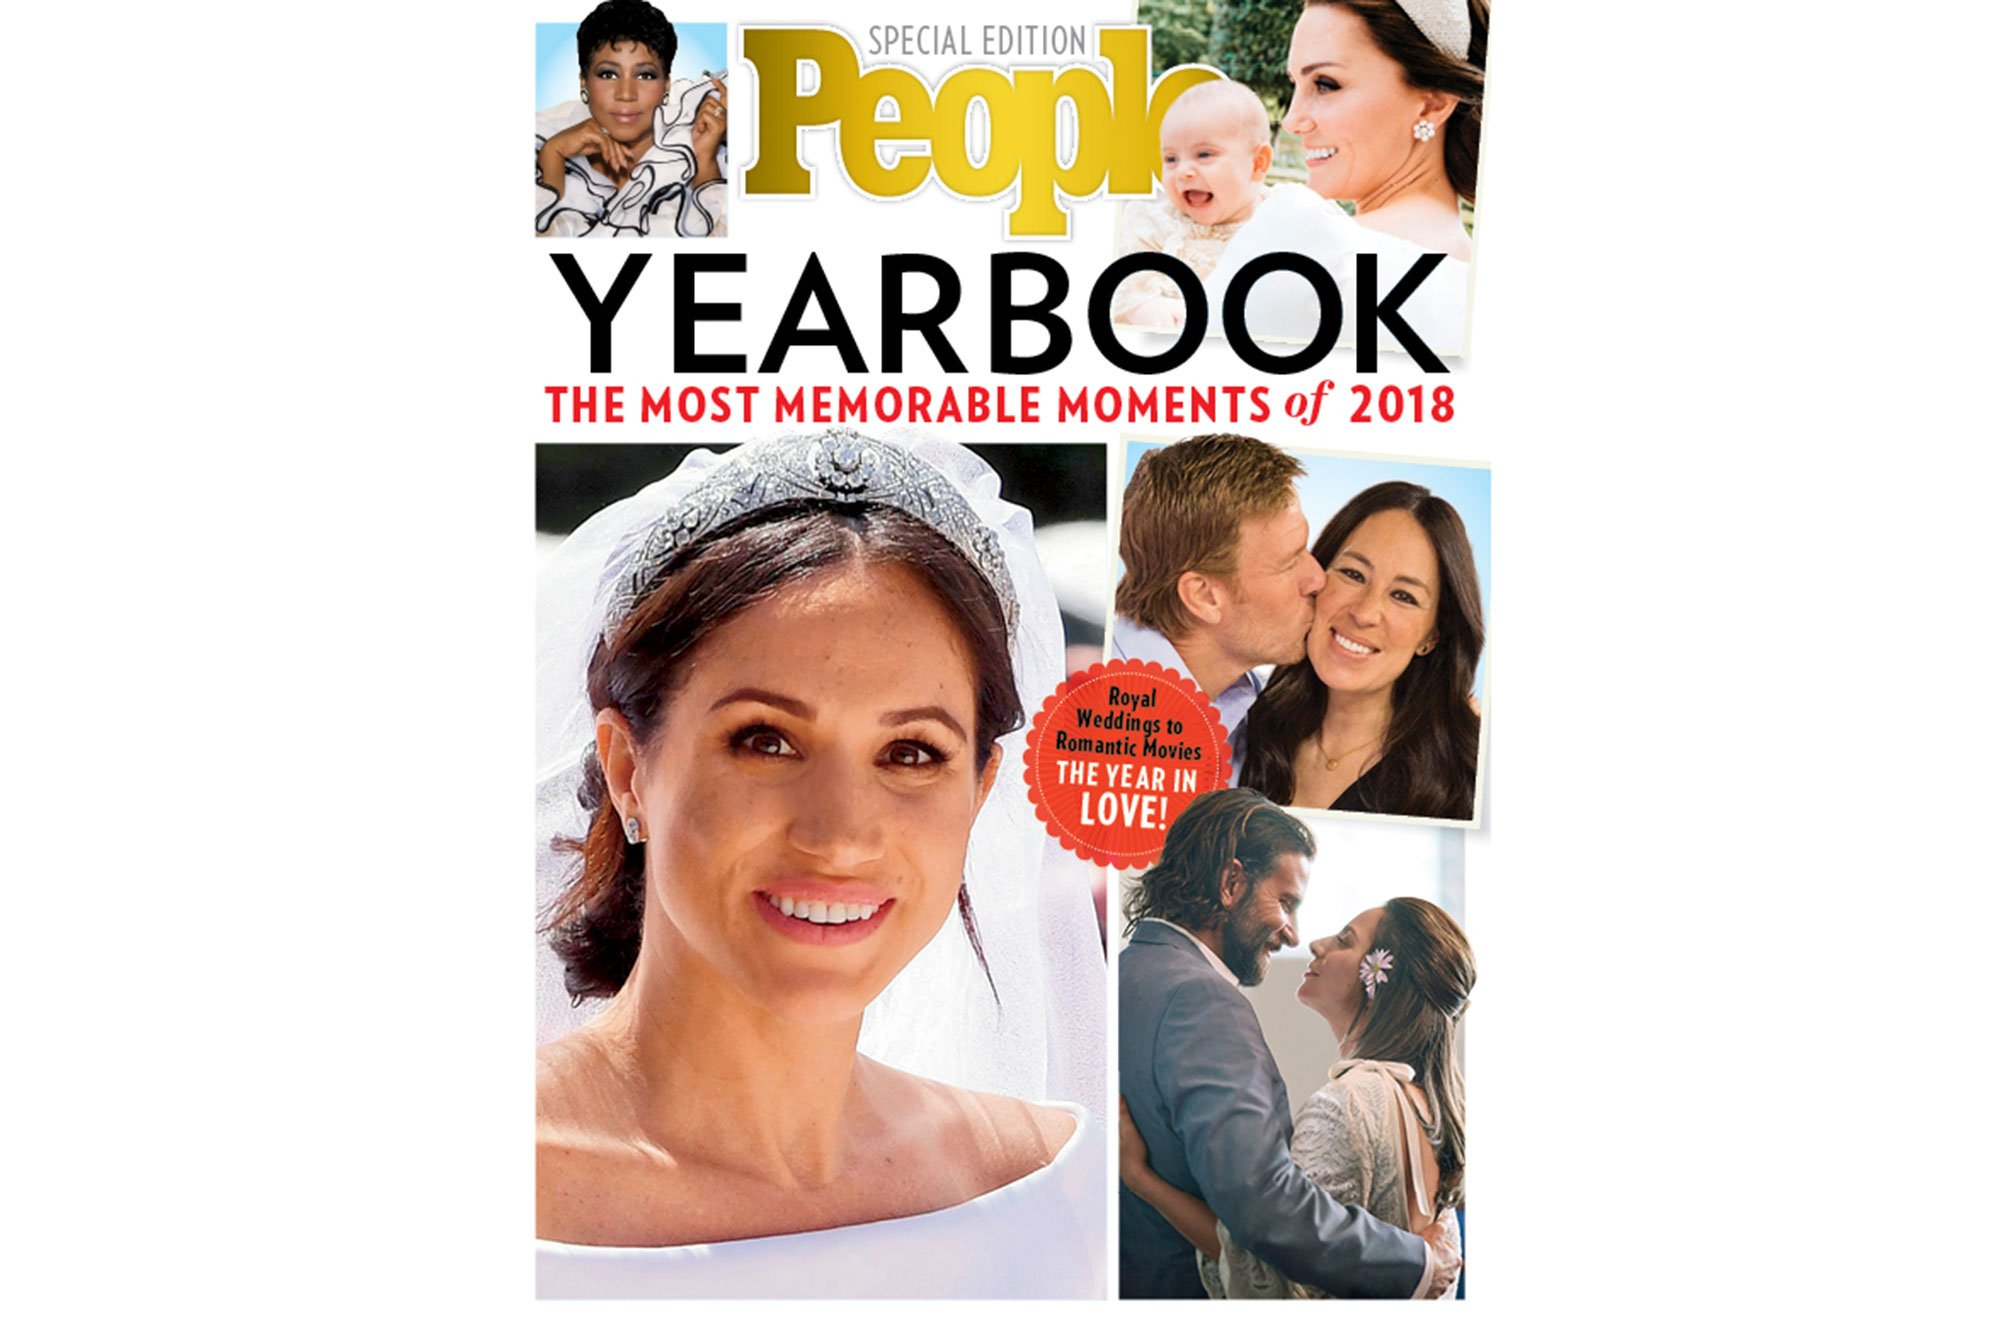 PEOPLE Celebrates 2018 with a Special Yearbook Edition